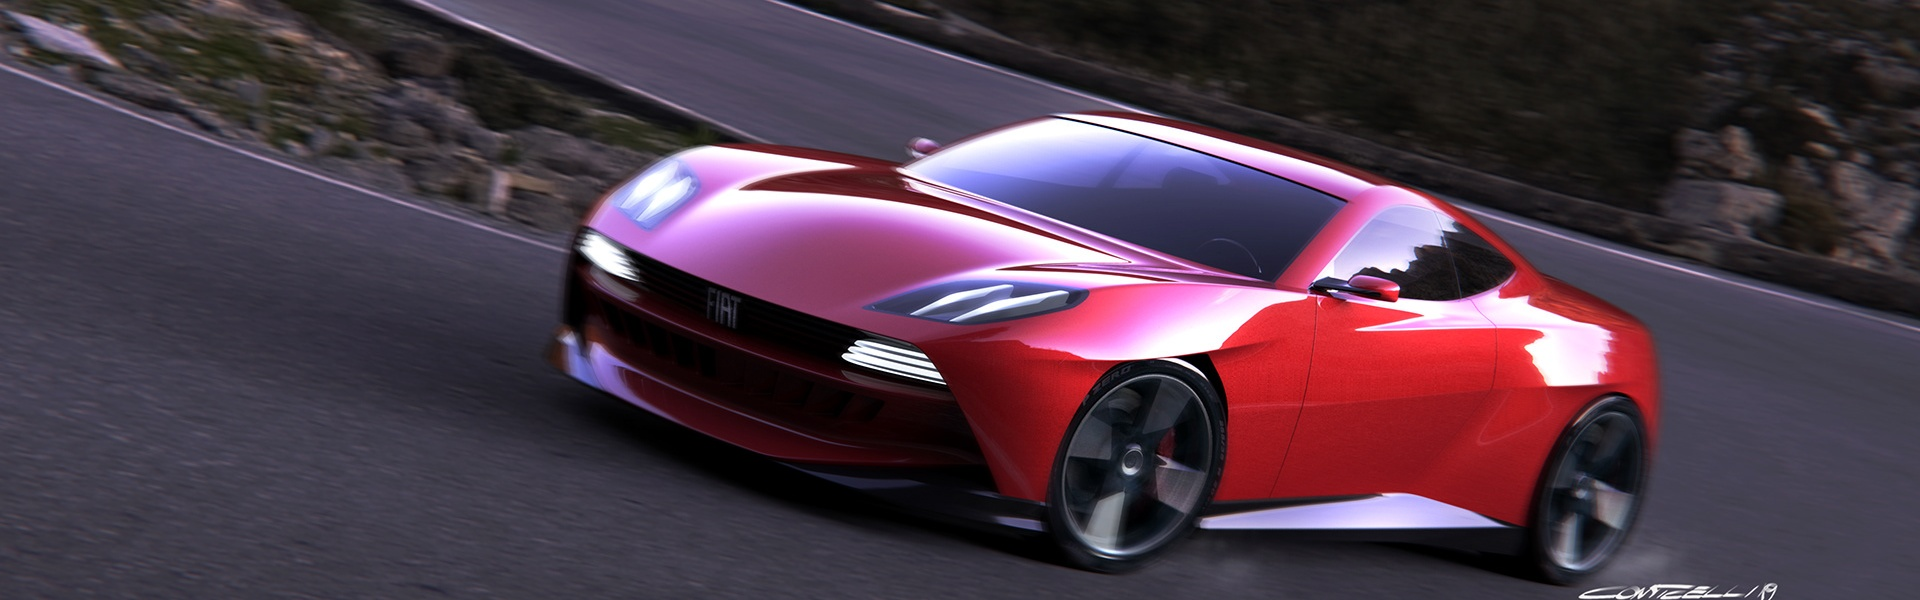 Fiat-Coupe-Tribute-renderings-by-Gaspare-Conticelli-8.jpg